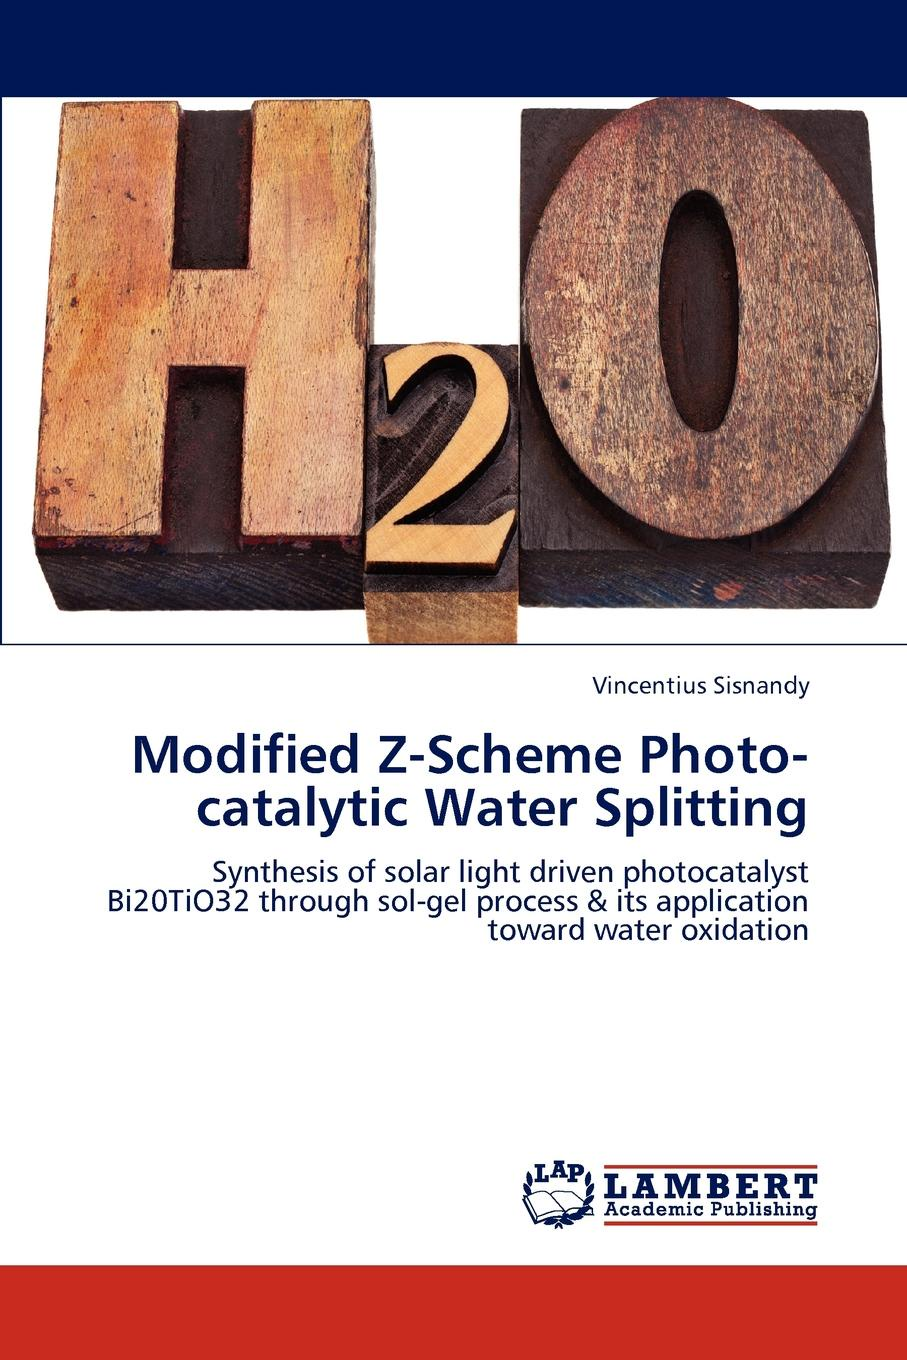 купить Vincentius Sisnandy Modified Z-Scheme Photo-catalytic Water Splitting по цене 8927 рублей